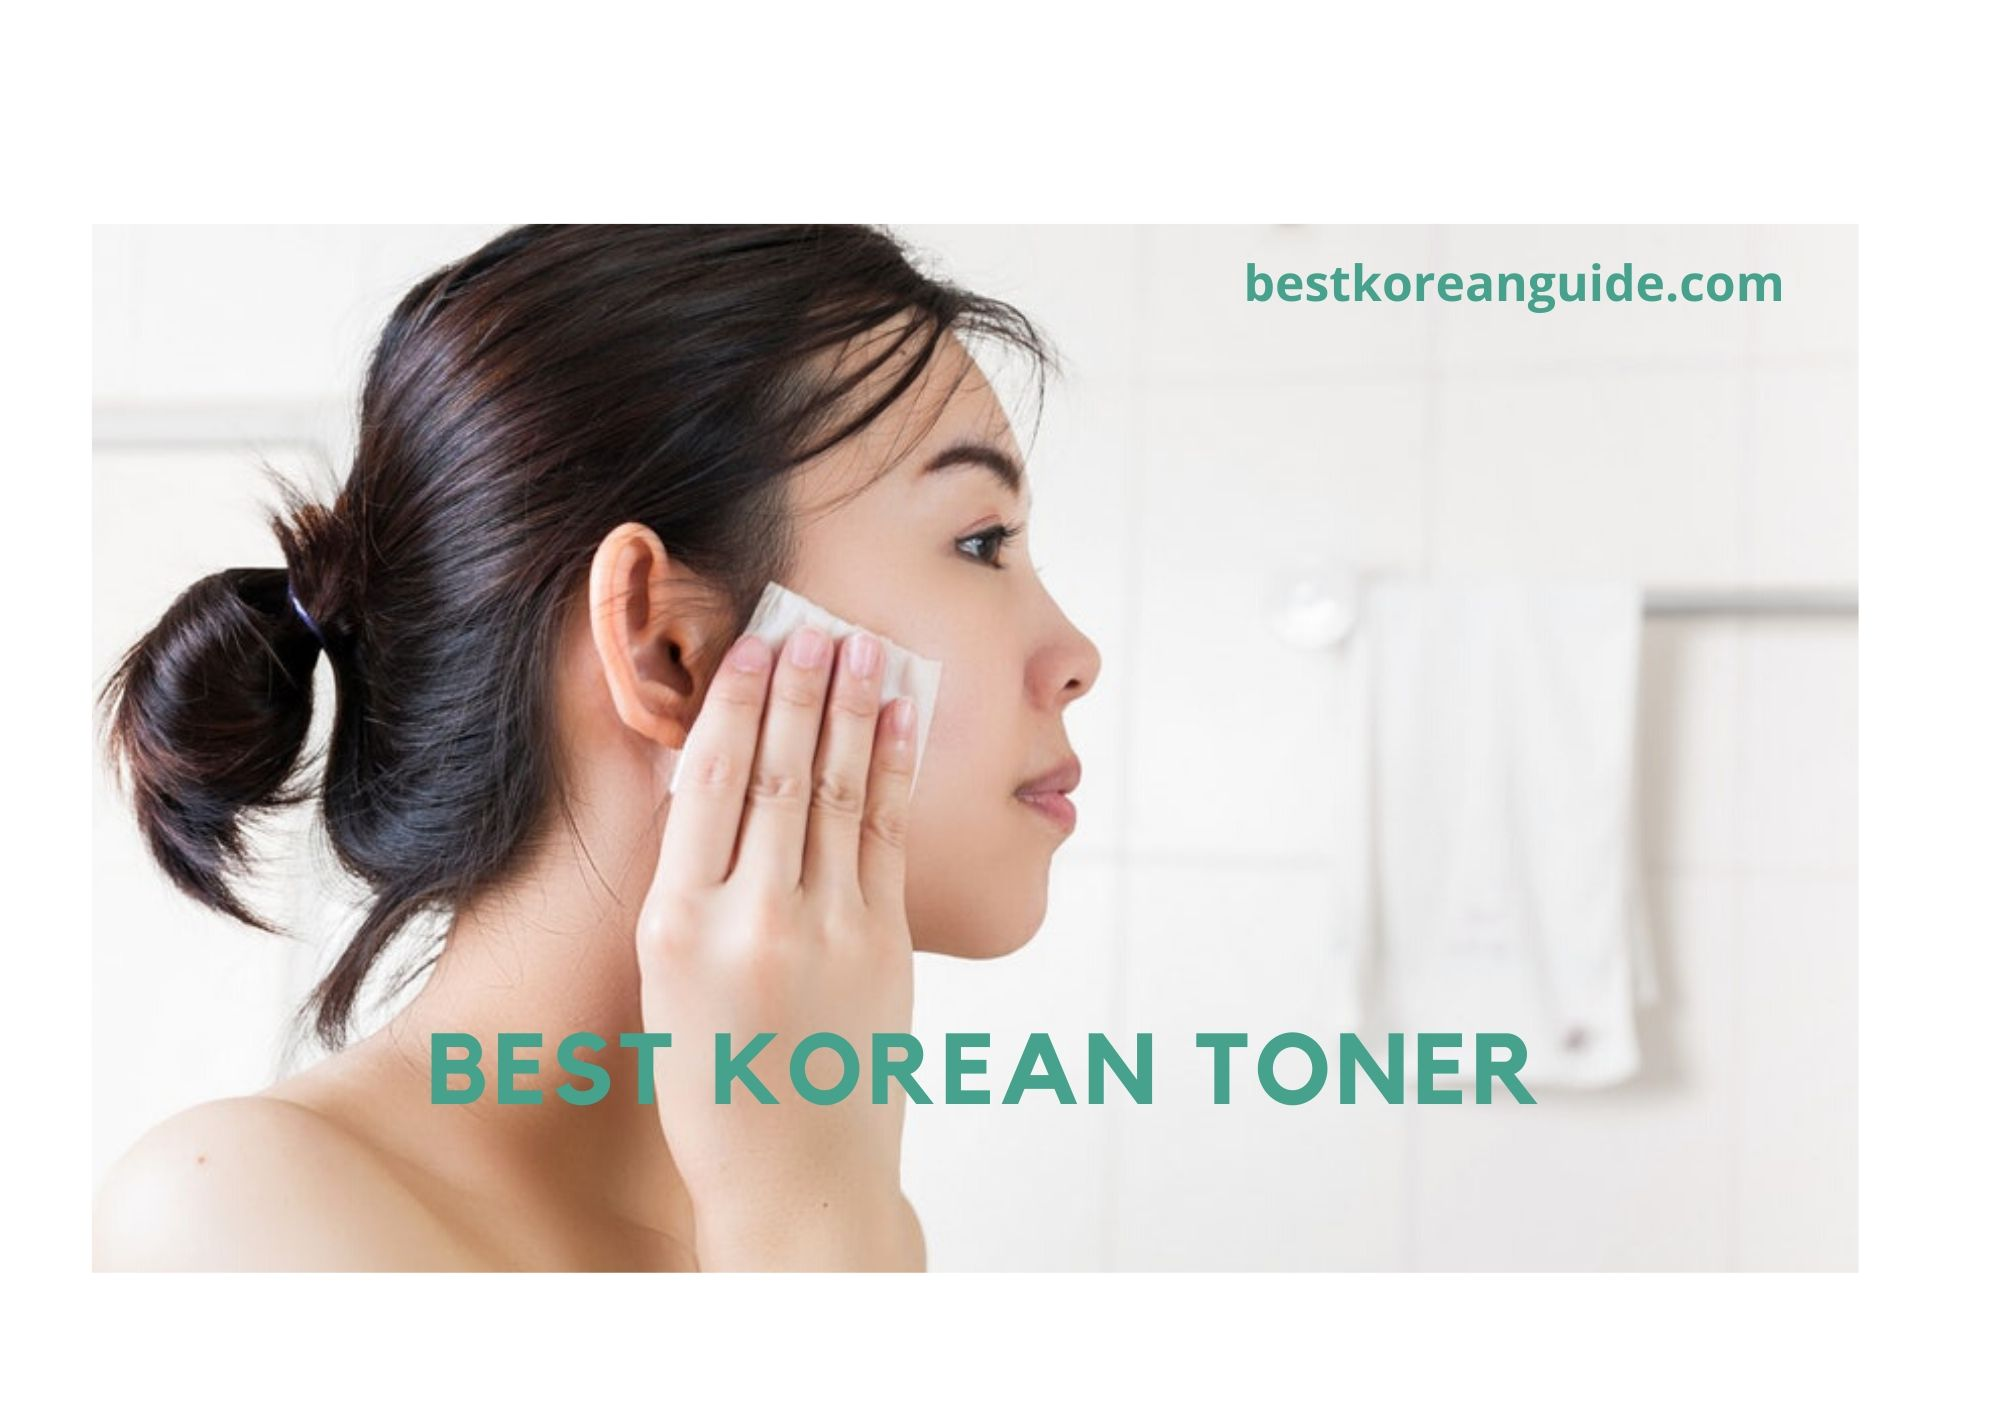 Best korean toner